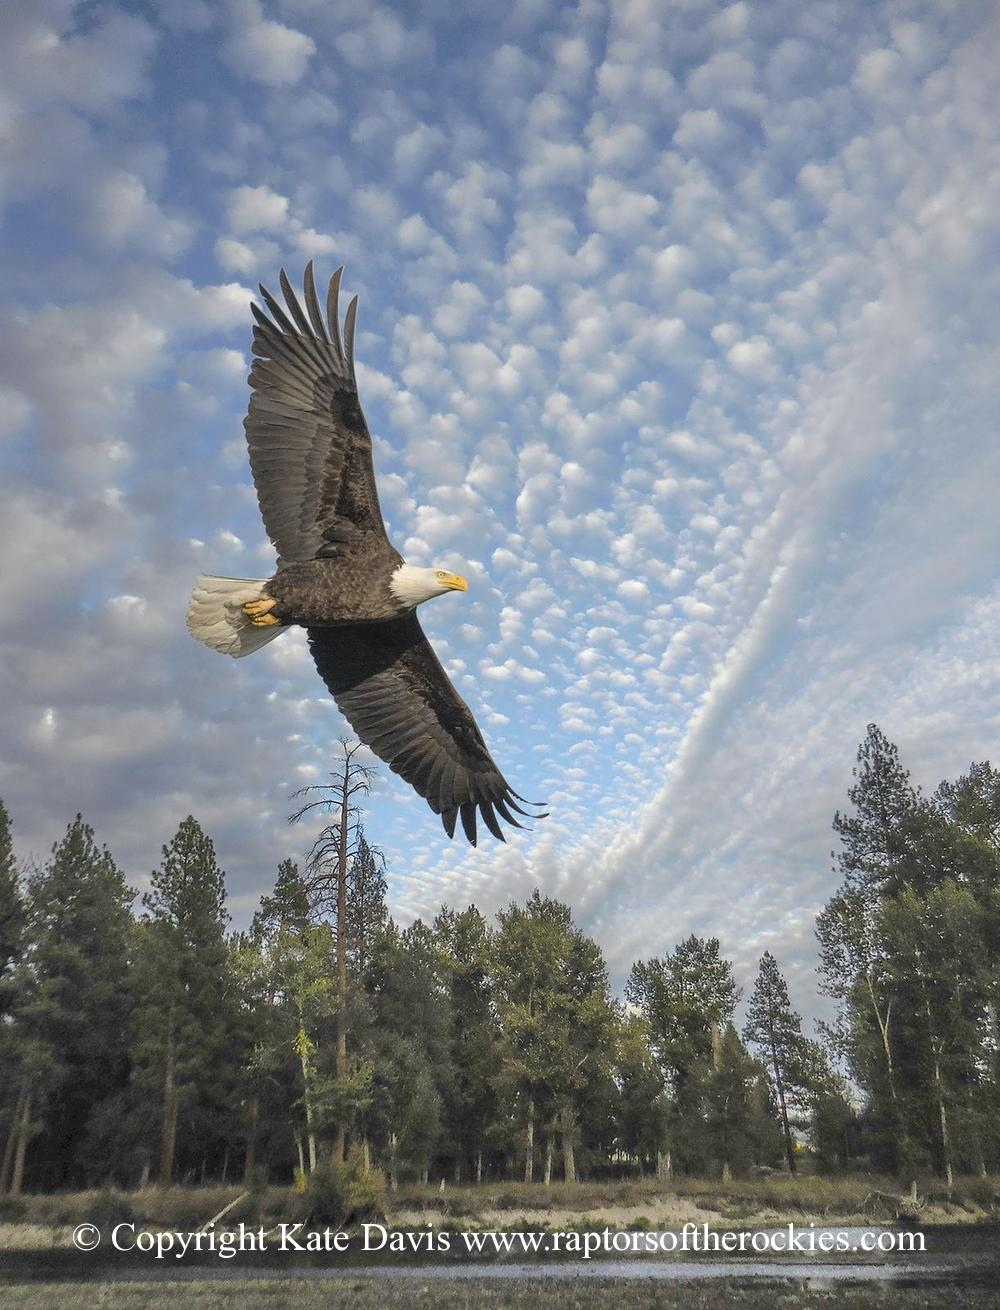 American Bald Eagle - Audubon Conference Cover - Golden Eagle - A beautiful cloud formation at the river, combined with an eagle closeup photo